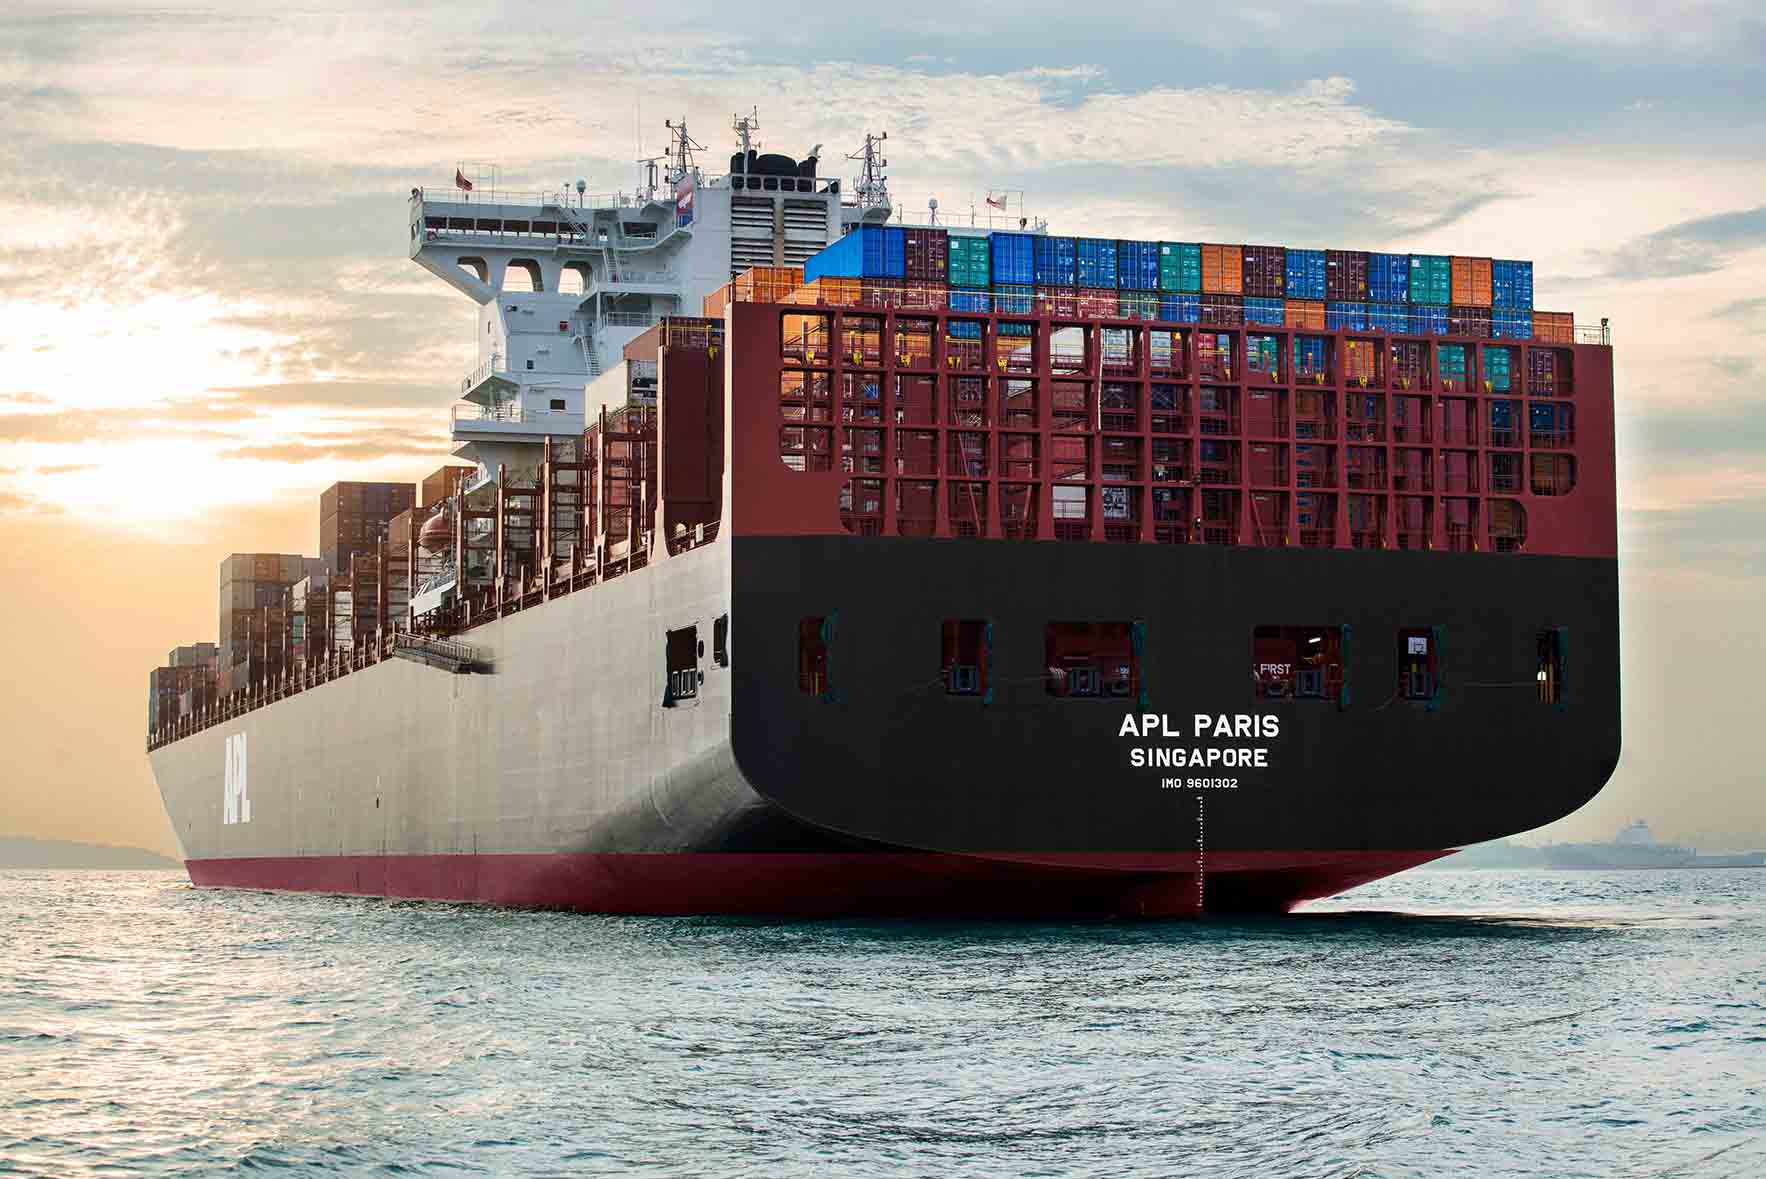 APL Paris - 10,000 TEU containership at sea, sunset